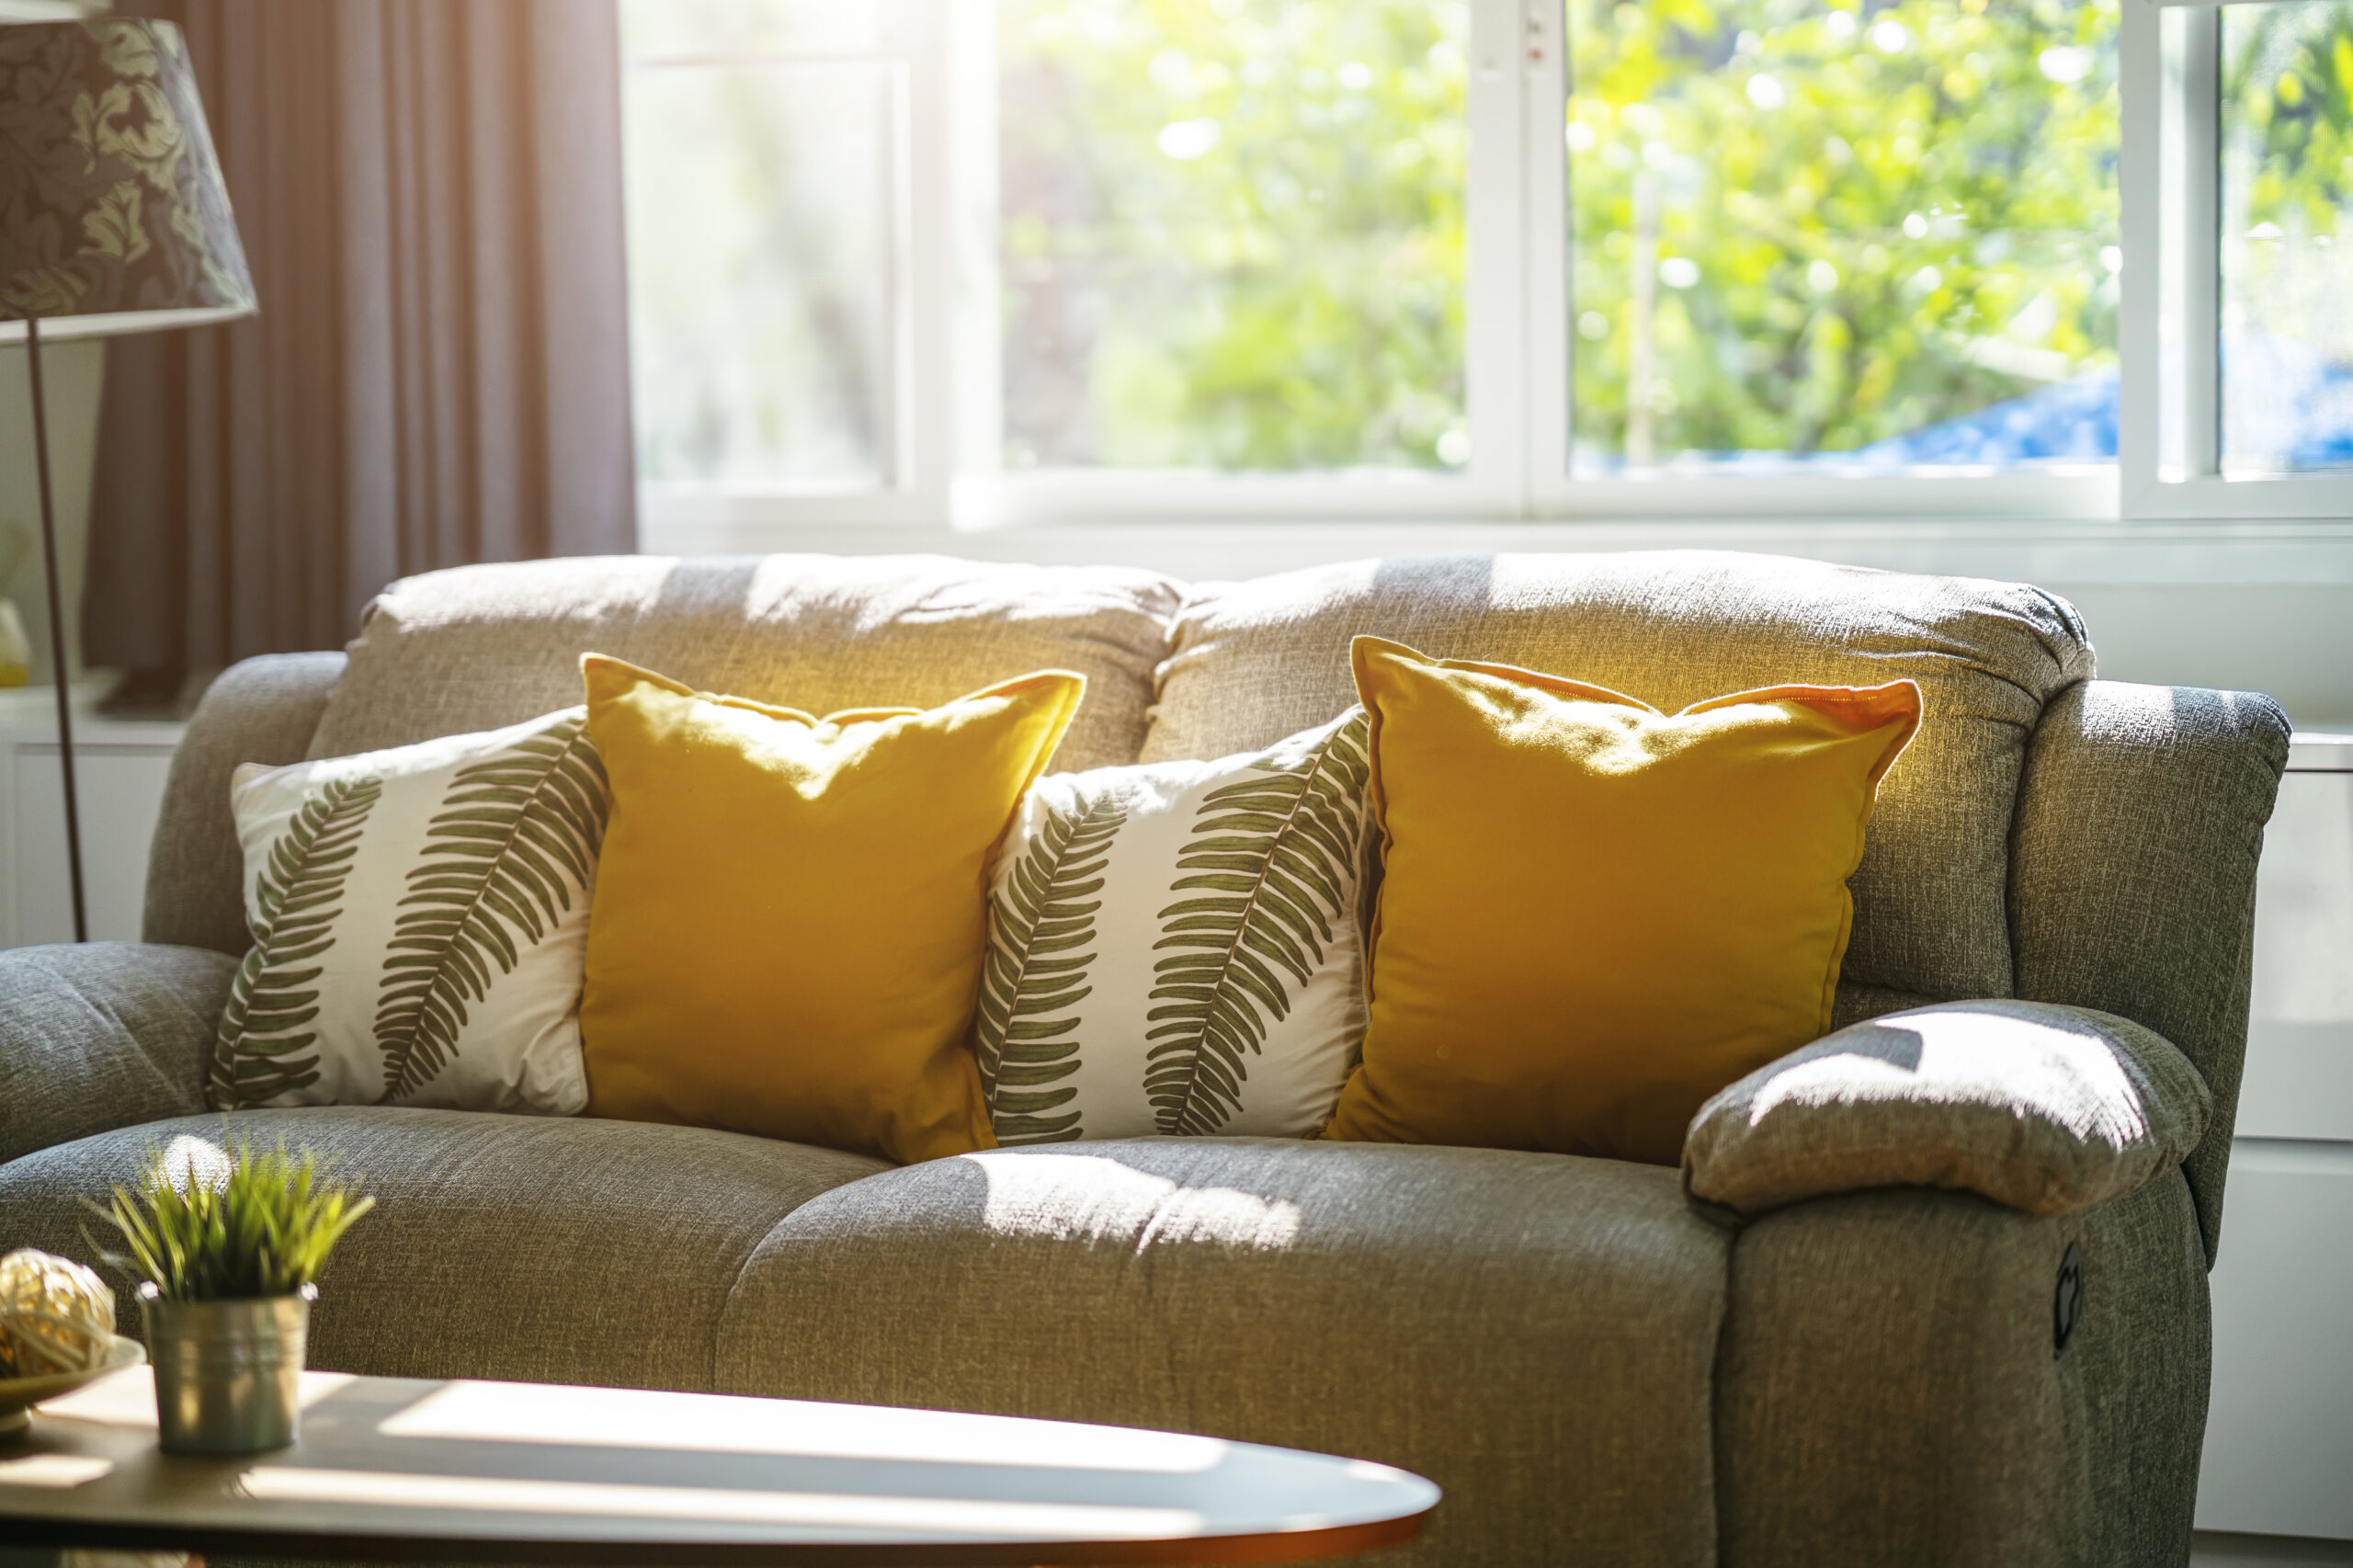 Couch in a room with sunlight from the window next to it illuminating the room